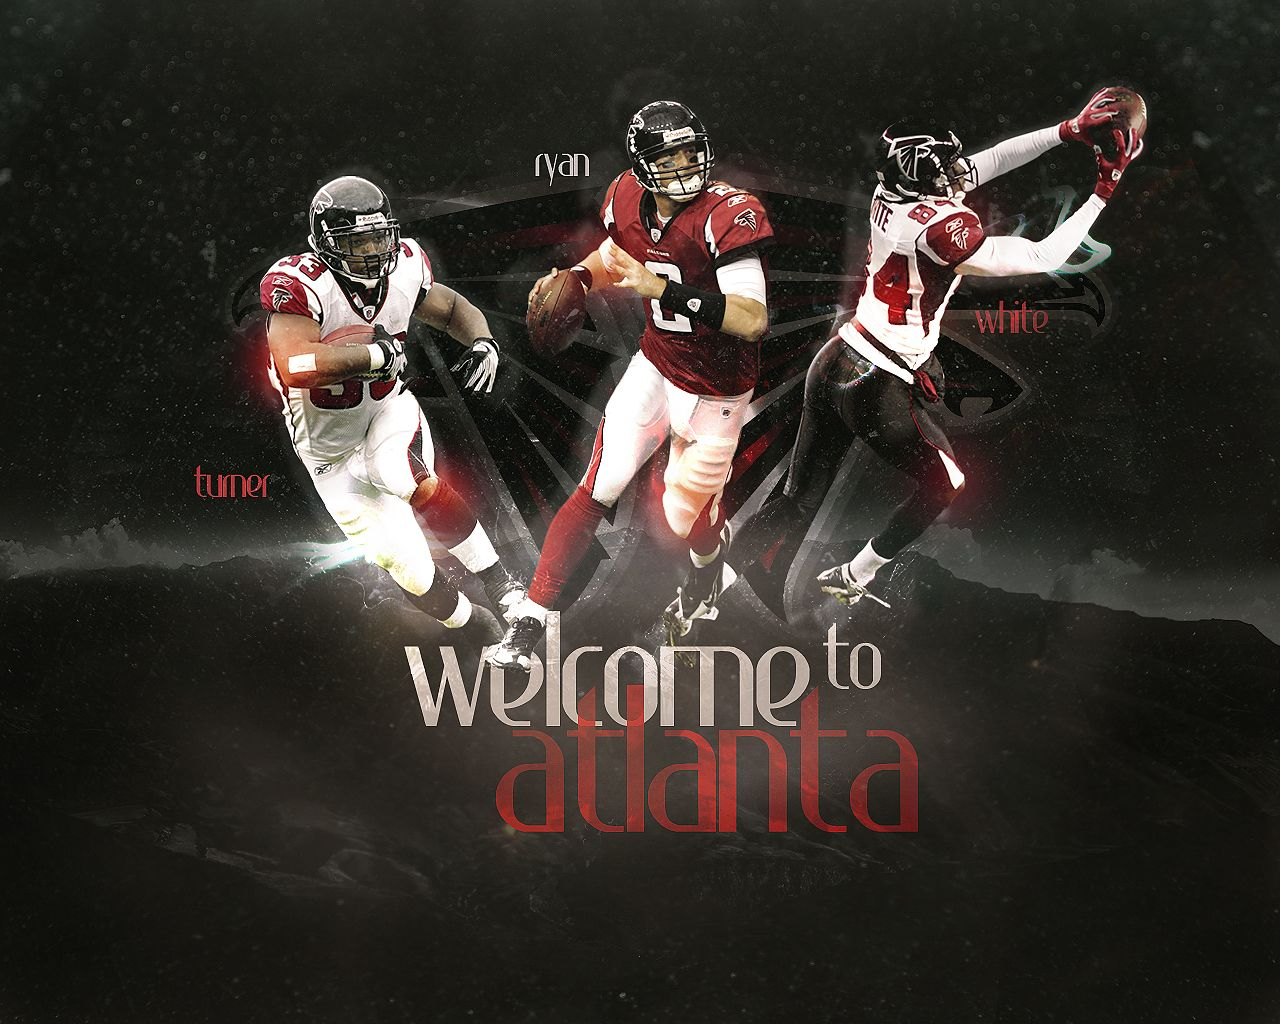 Atlanta Falcons Wallpaper Google Search Atlanta Falcons Wallpaper Atlanta Falcons Football Atlanta Falcons